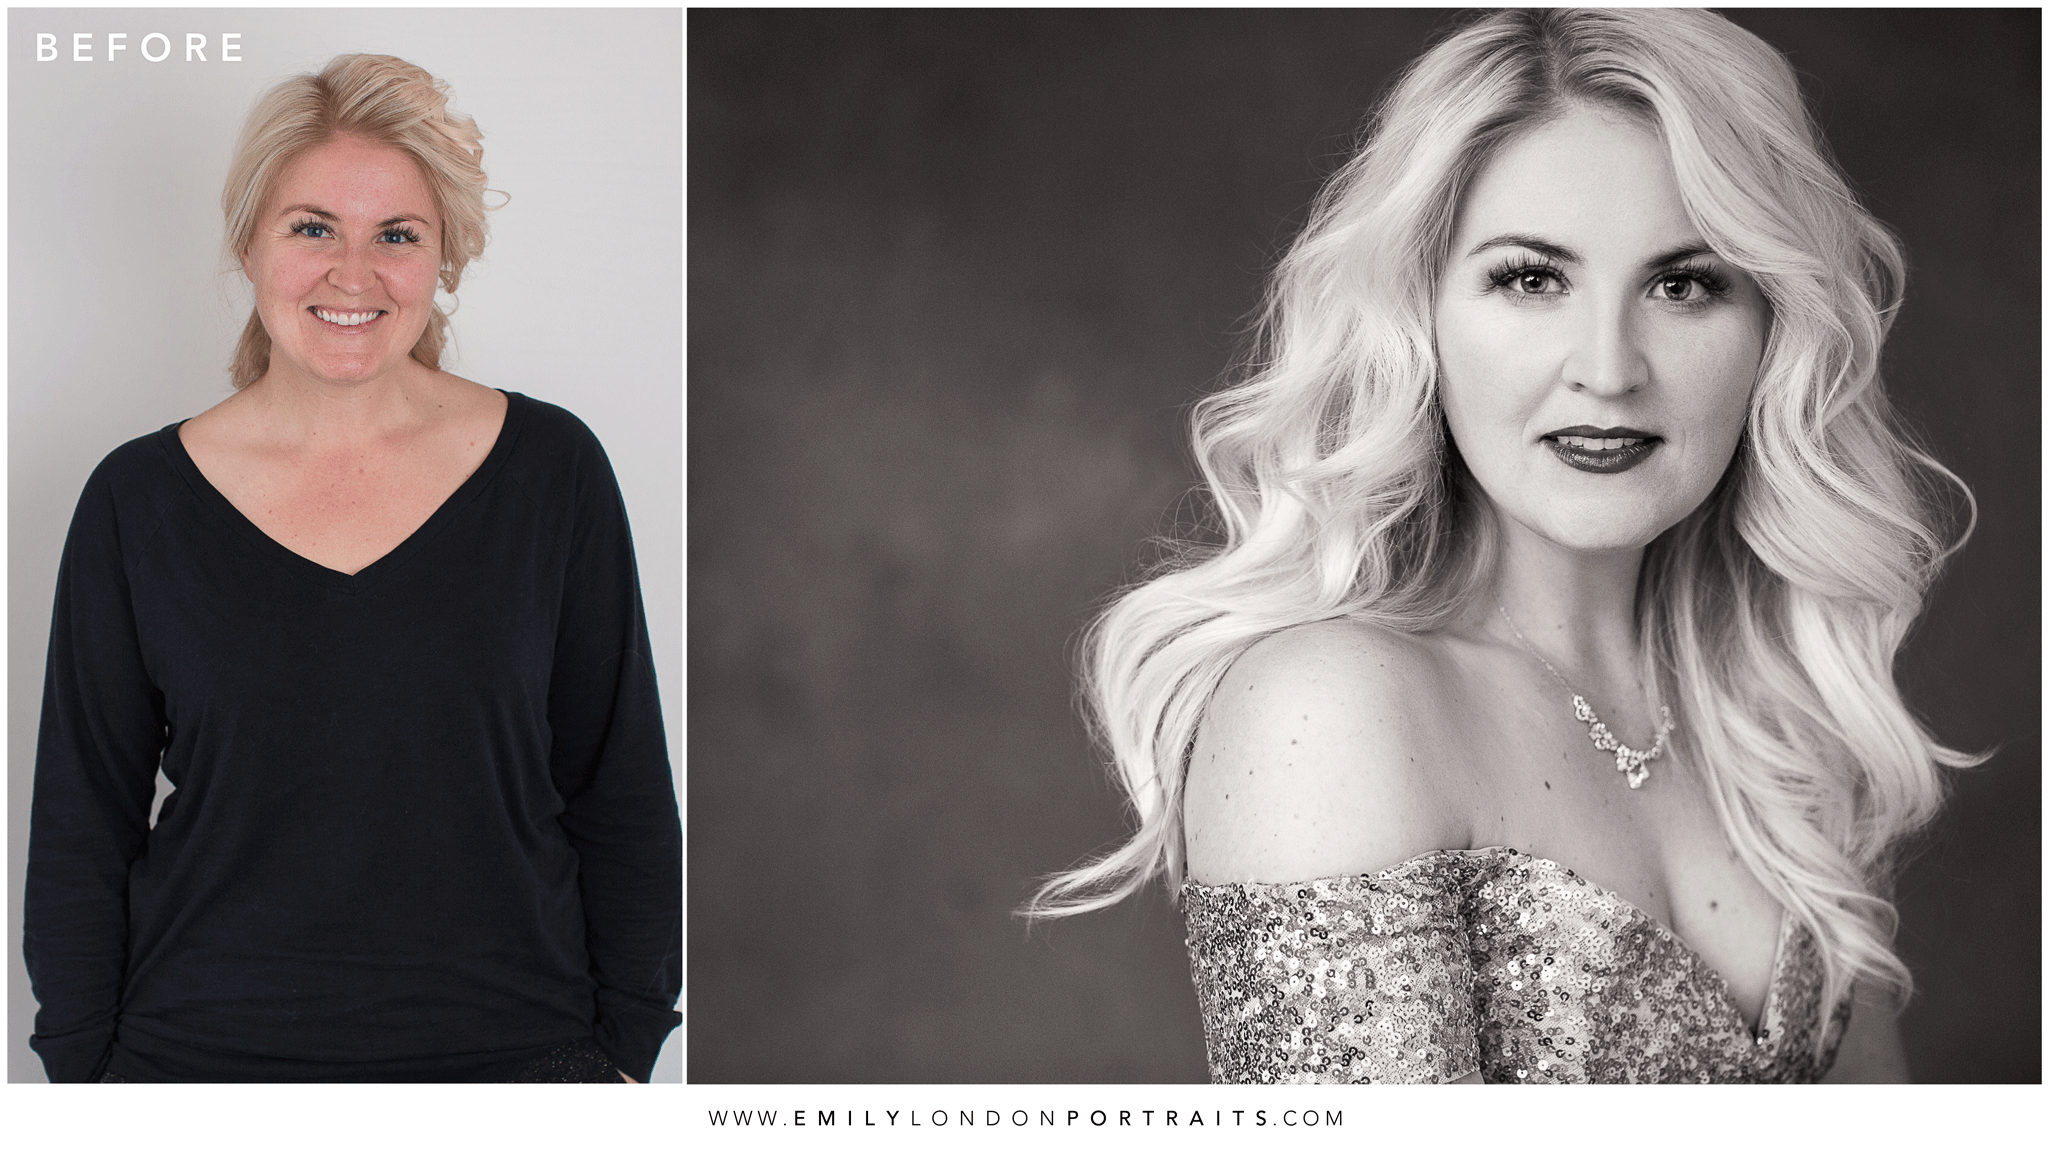 Before and After a Beautiful Makeover and Portrait Session